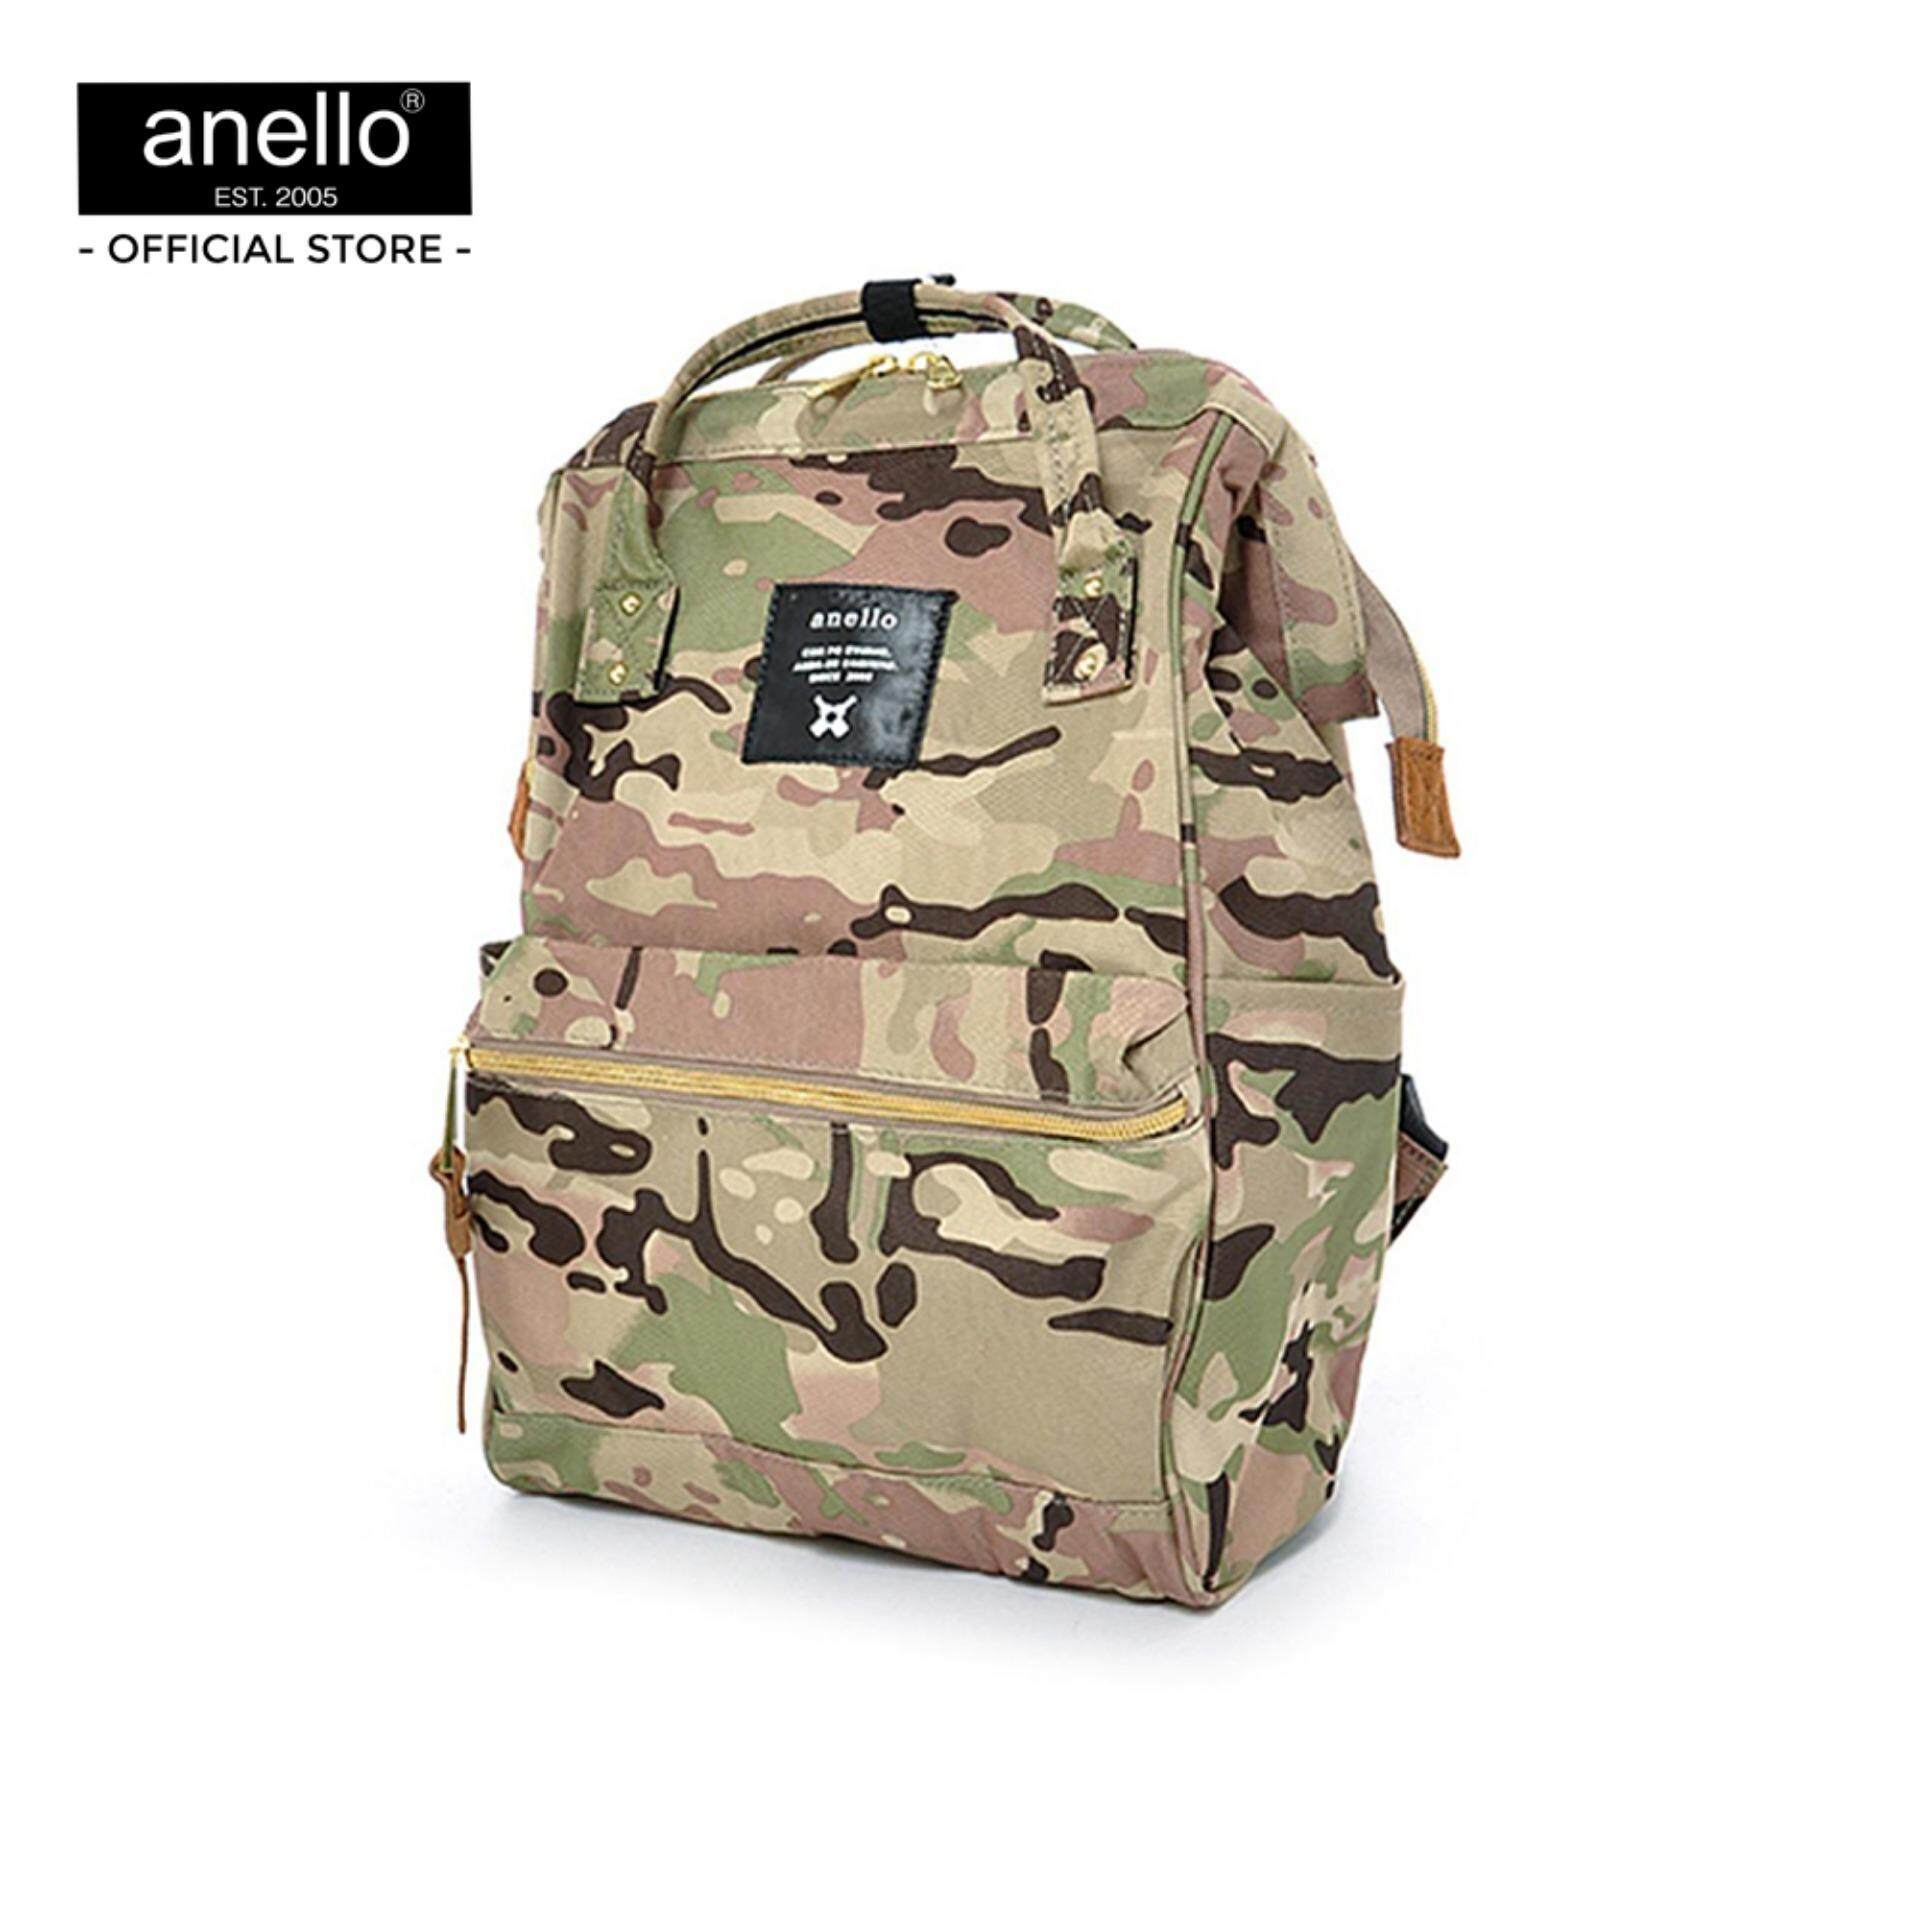 anello กระเป๋า Mini Backpack_AT-B0197B